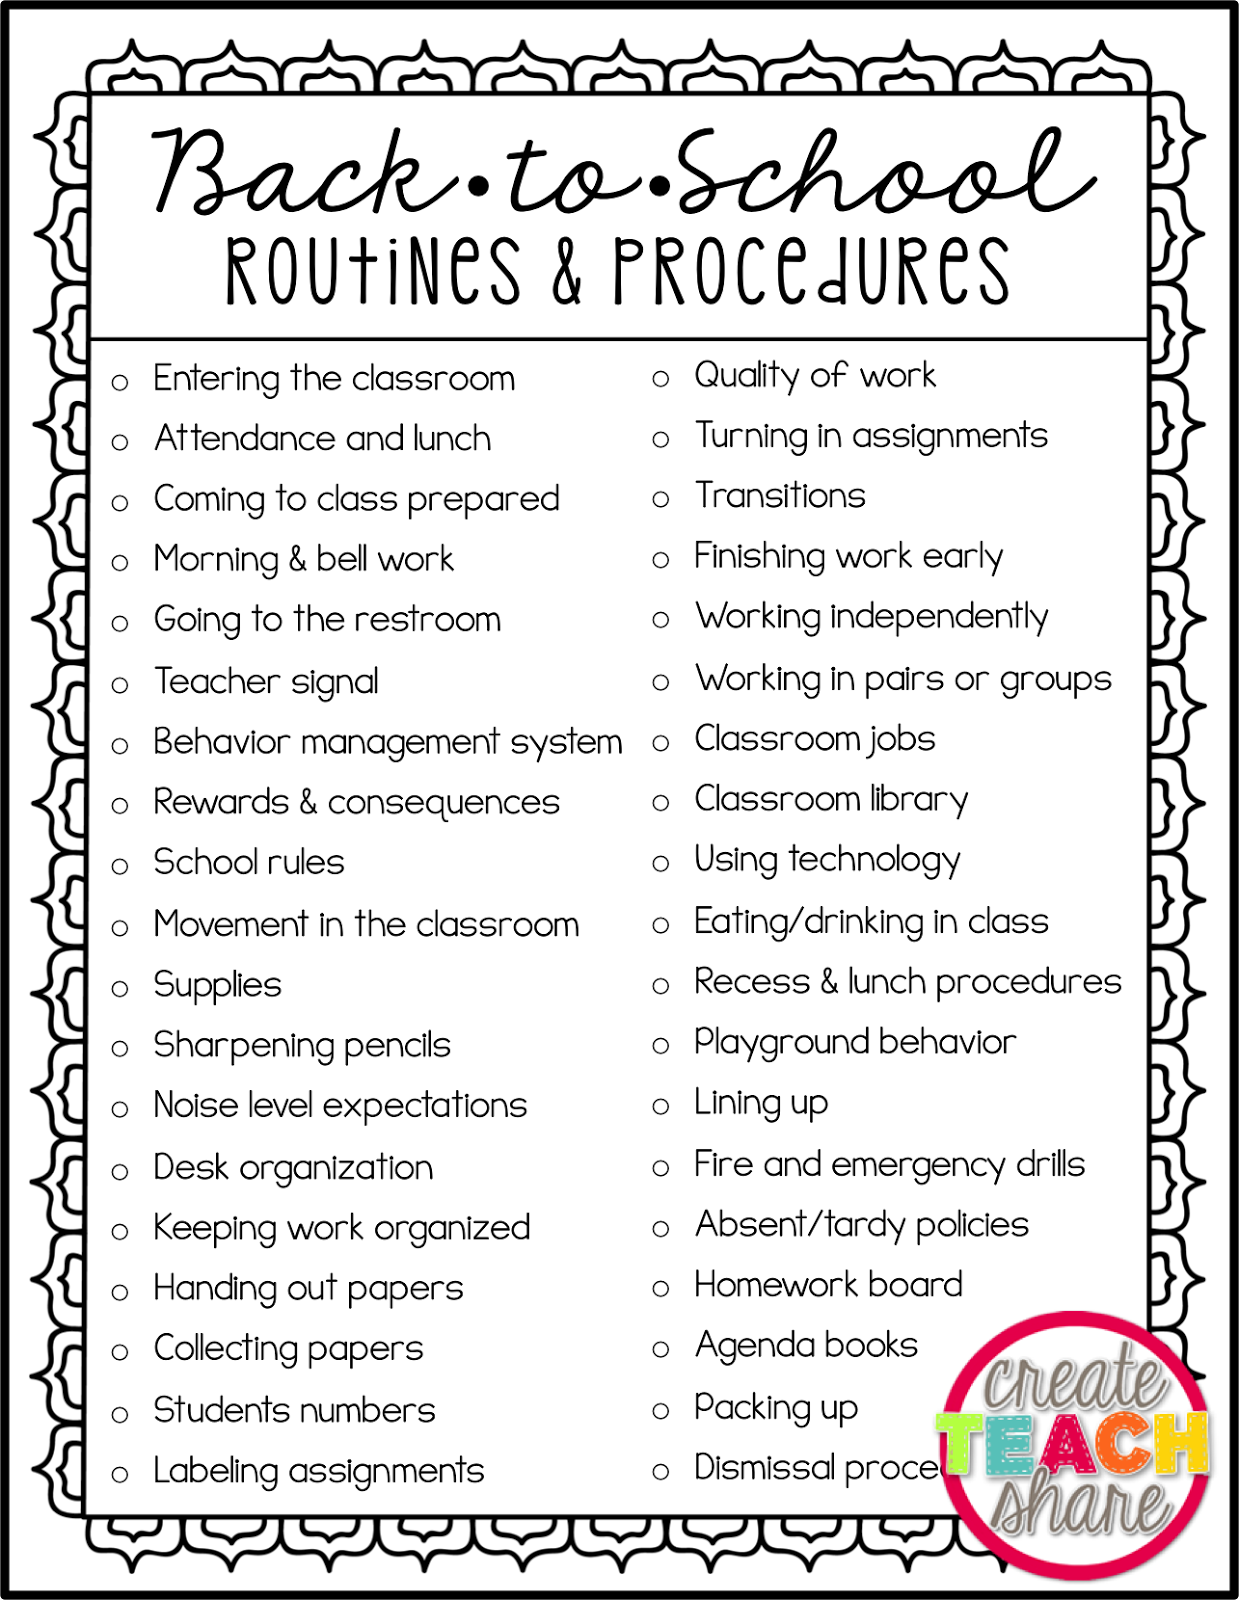 Classroom Routine Ideas ~ Back to school routines procedures upper elementary